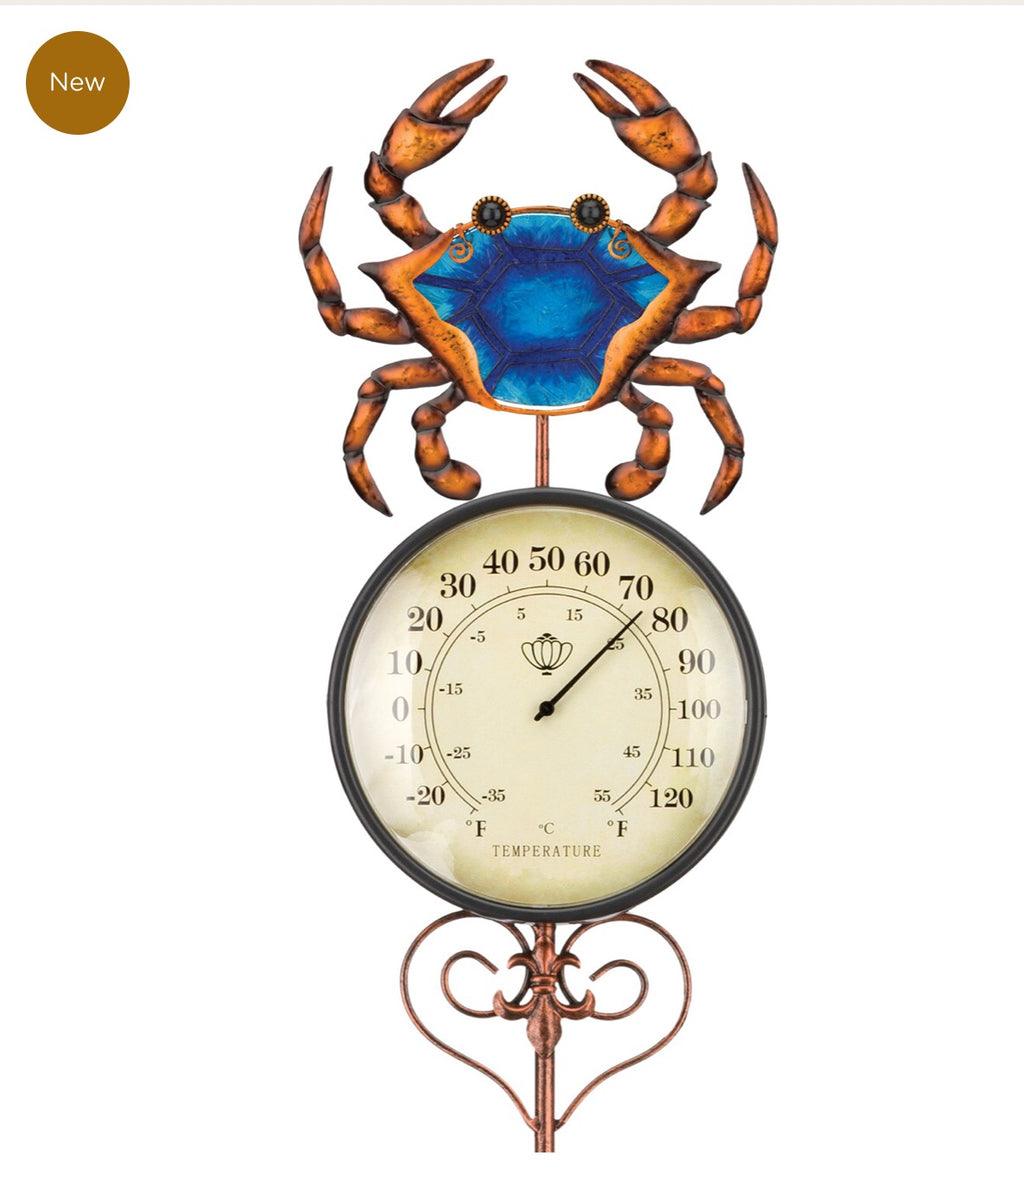 Crab Thermometer Stake